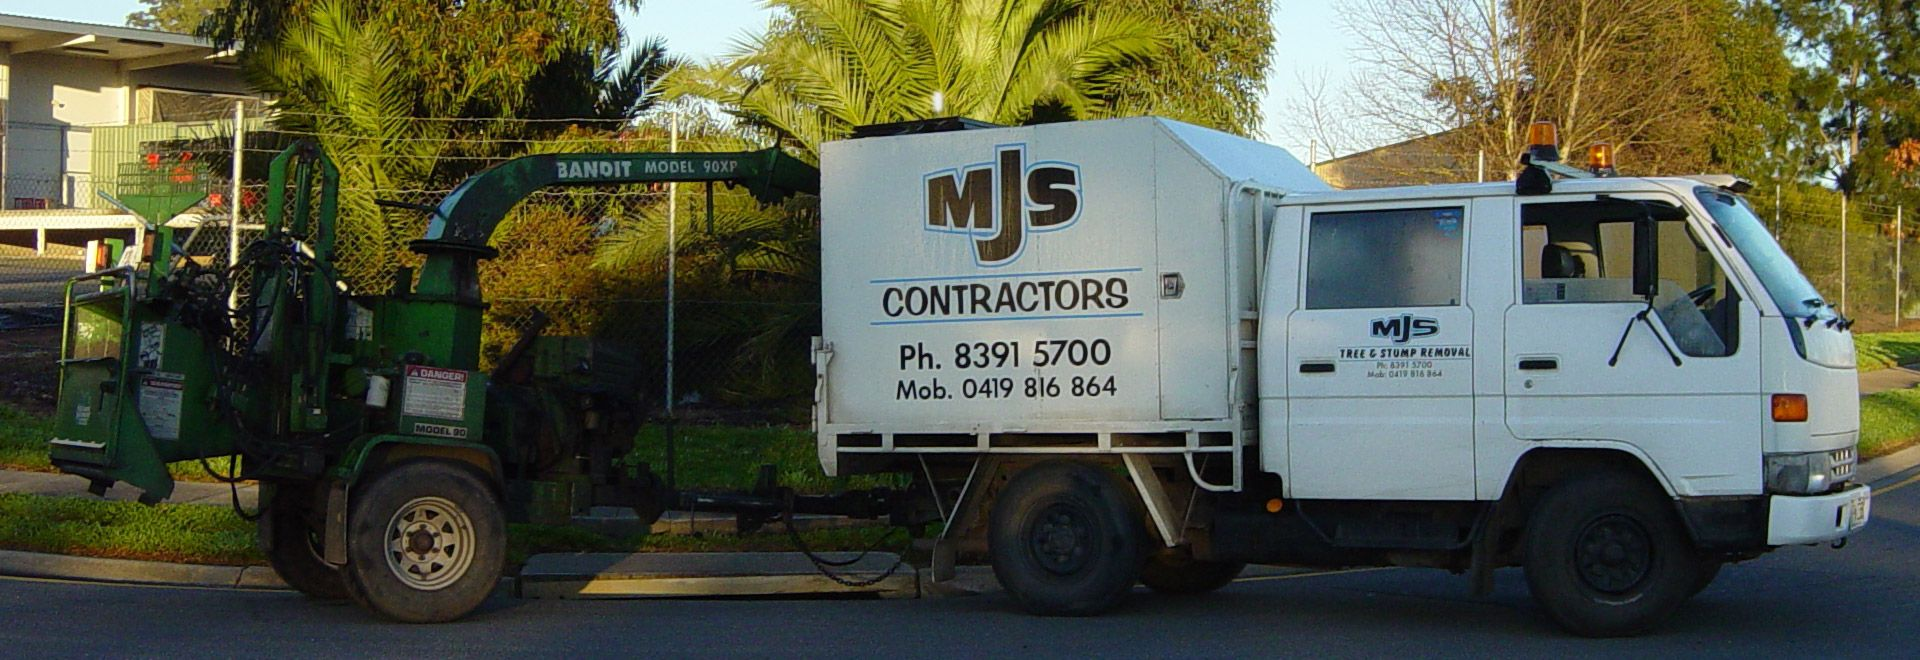 Tree Removal Services in Adelaide Hills and Adelaide - MJS Tree & Stump